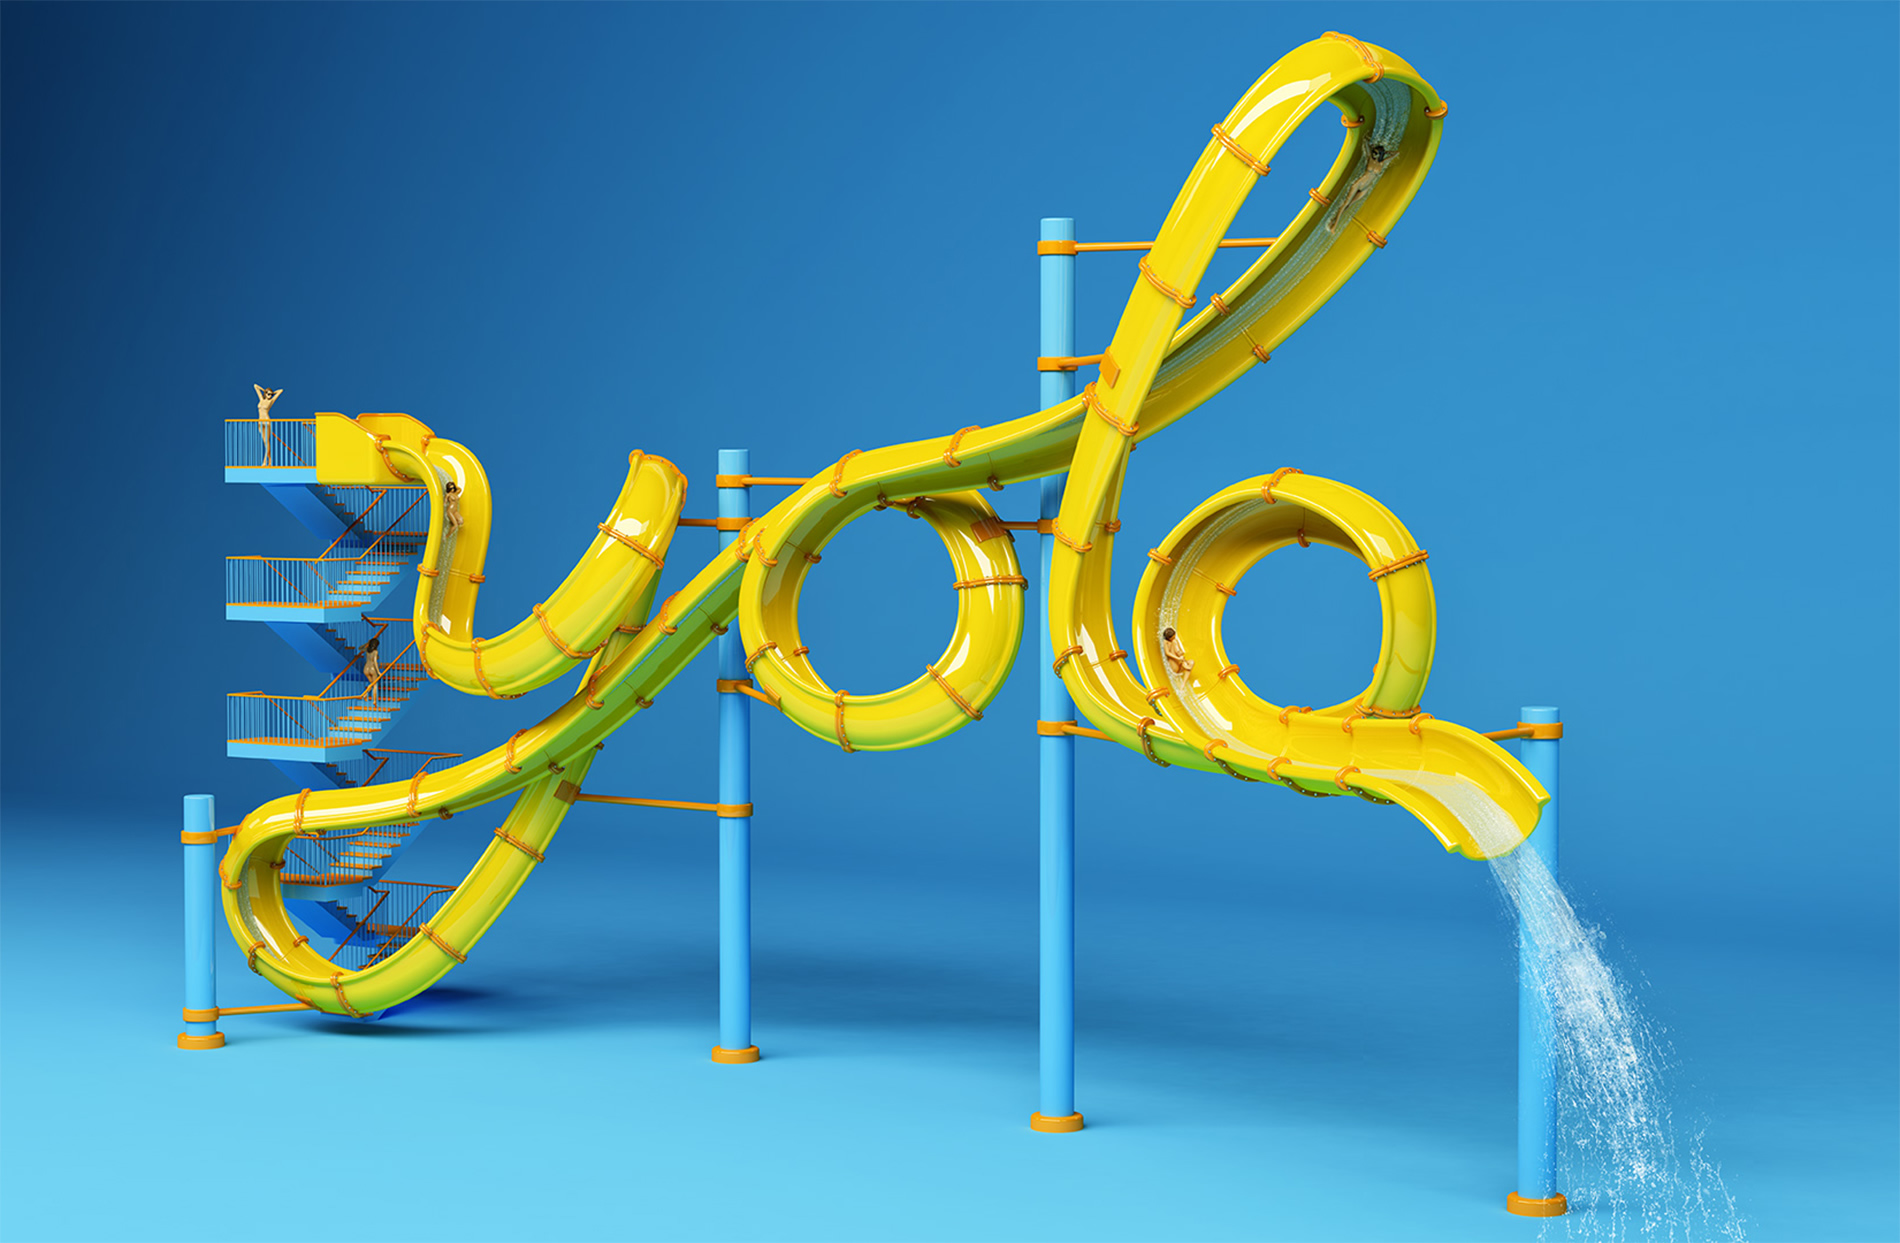 yola letters, yellow water slide by FOREAL